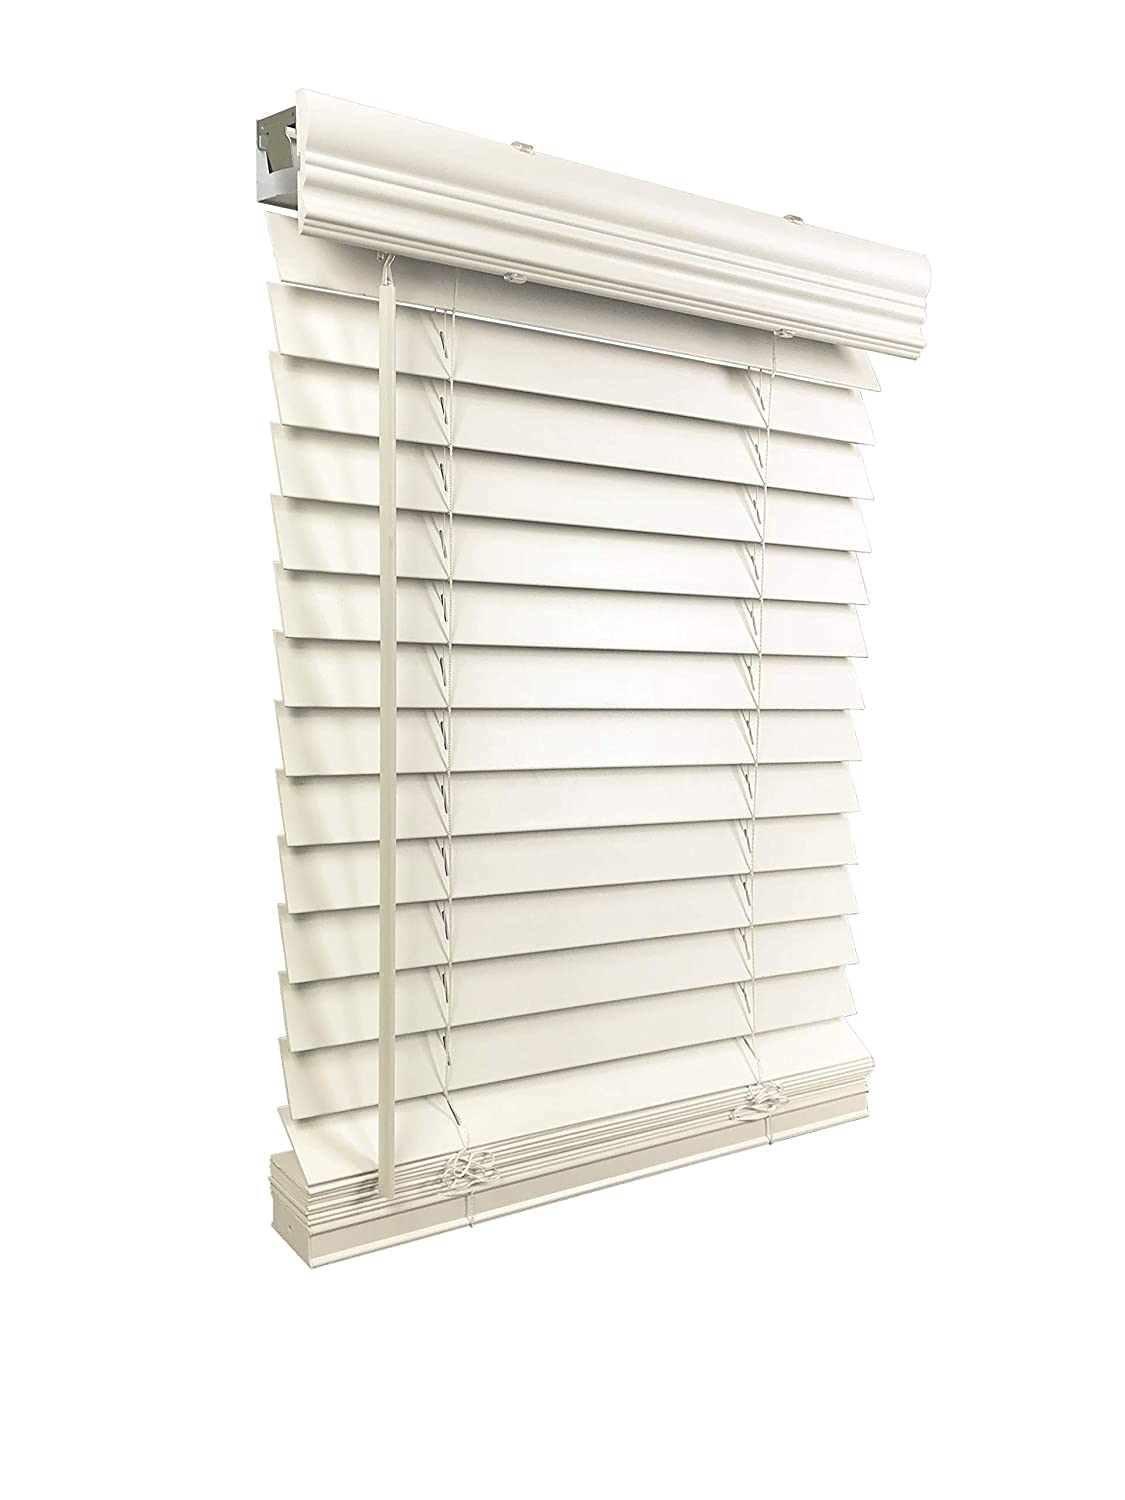 1 1 2 Inch Faux Wood Blinds.Us Window And Floor 2 Faux Wood 16 5 W X 48 H Inside Mount Cordless Blinds 16 5 X 48 White